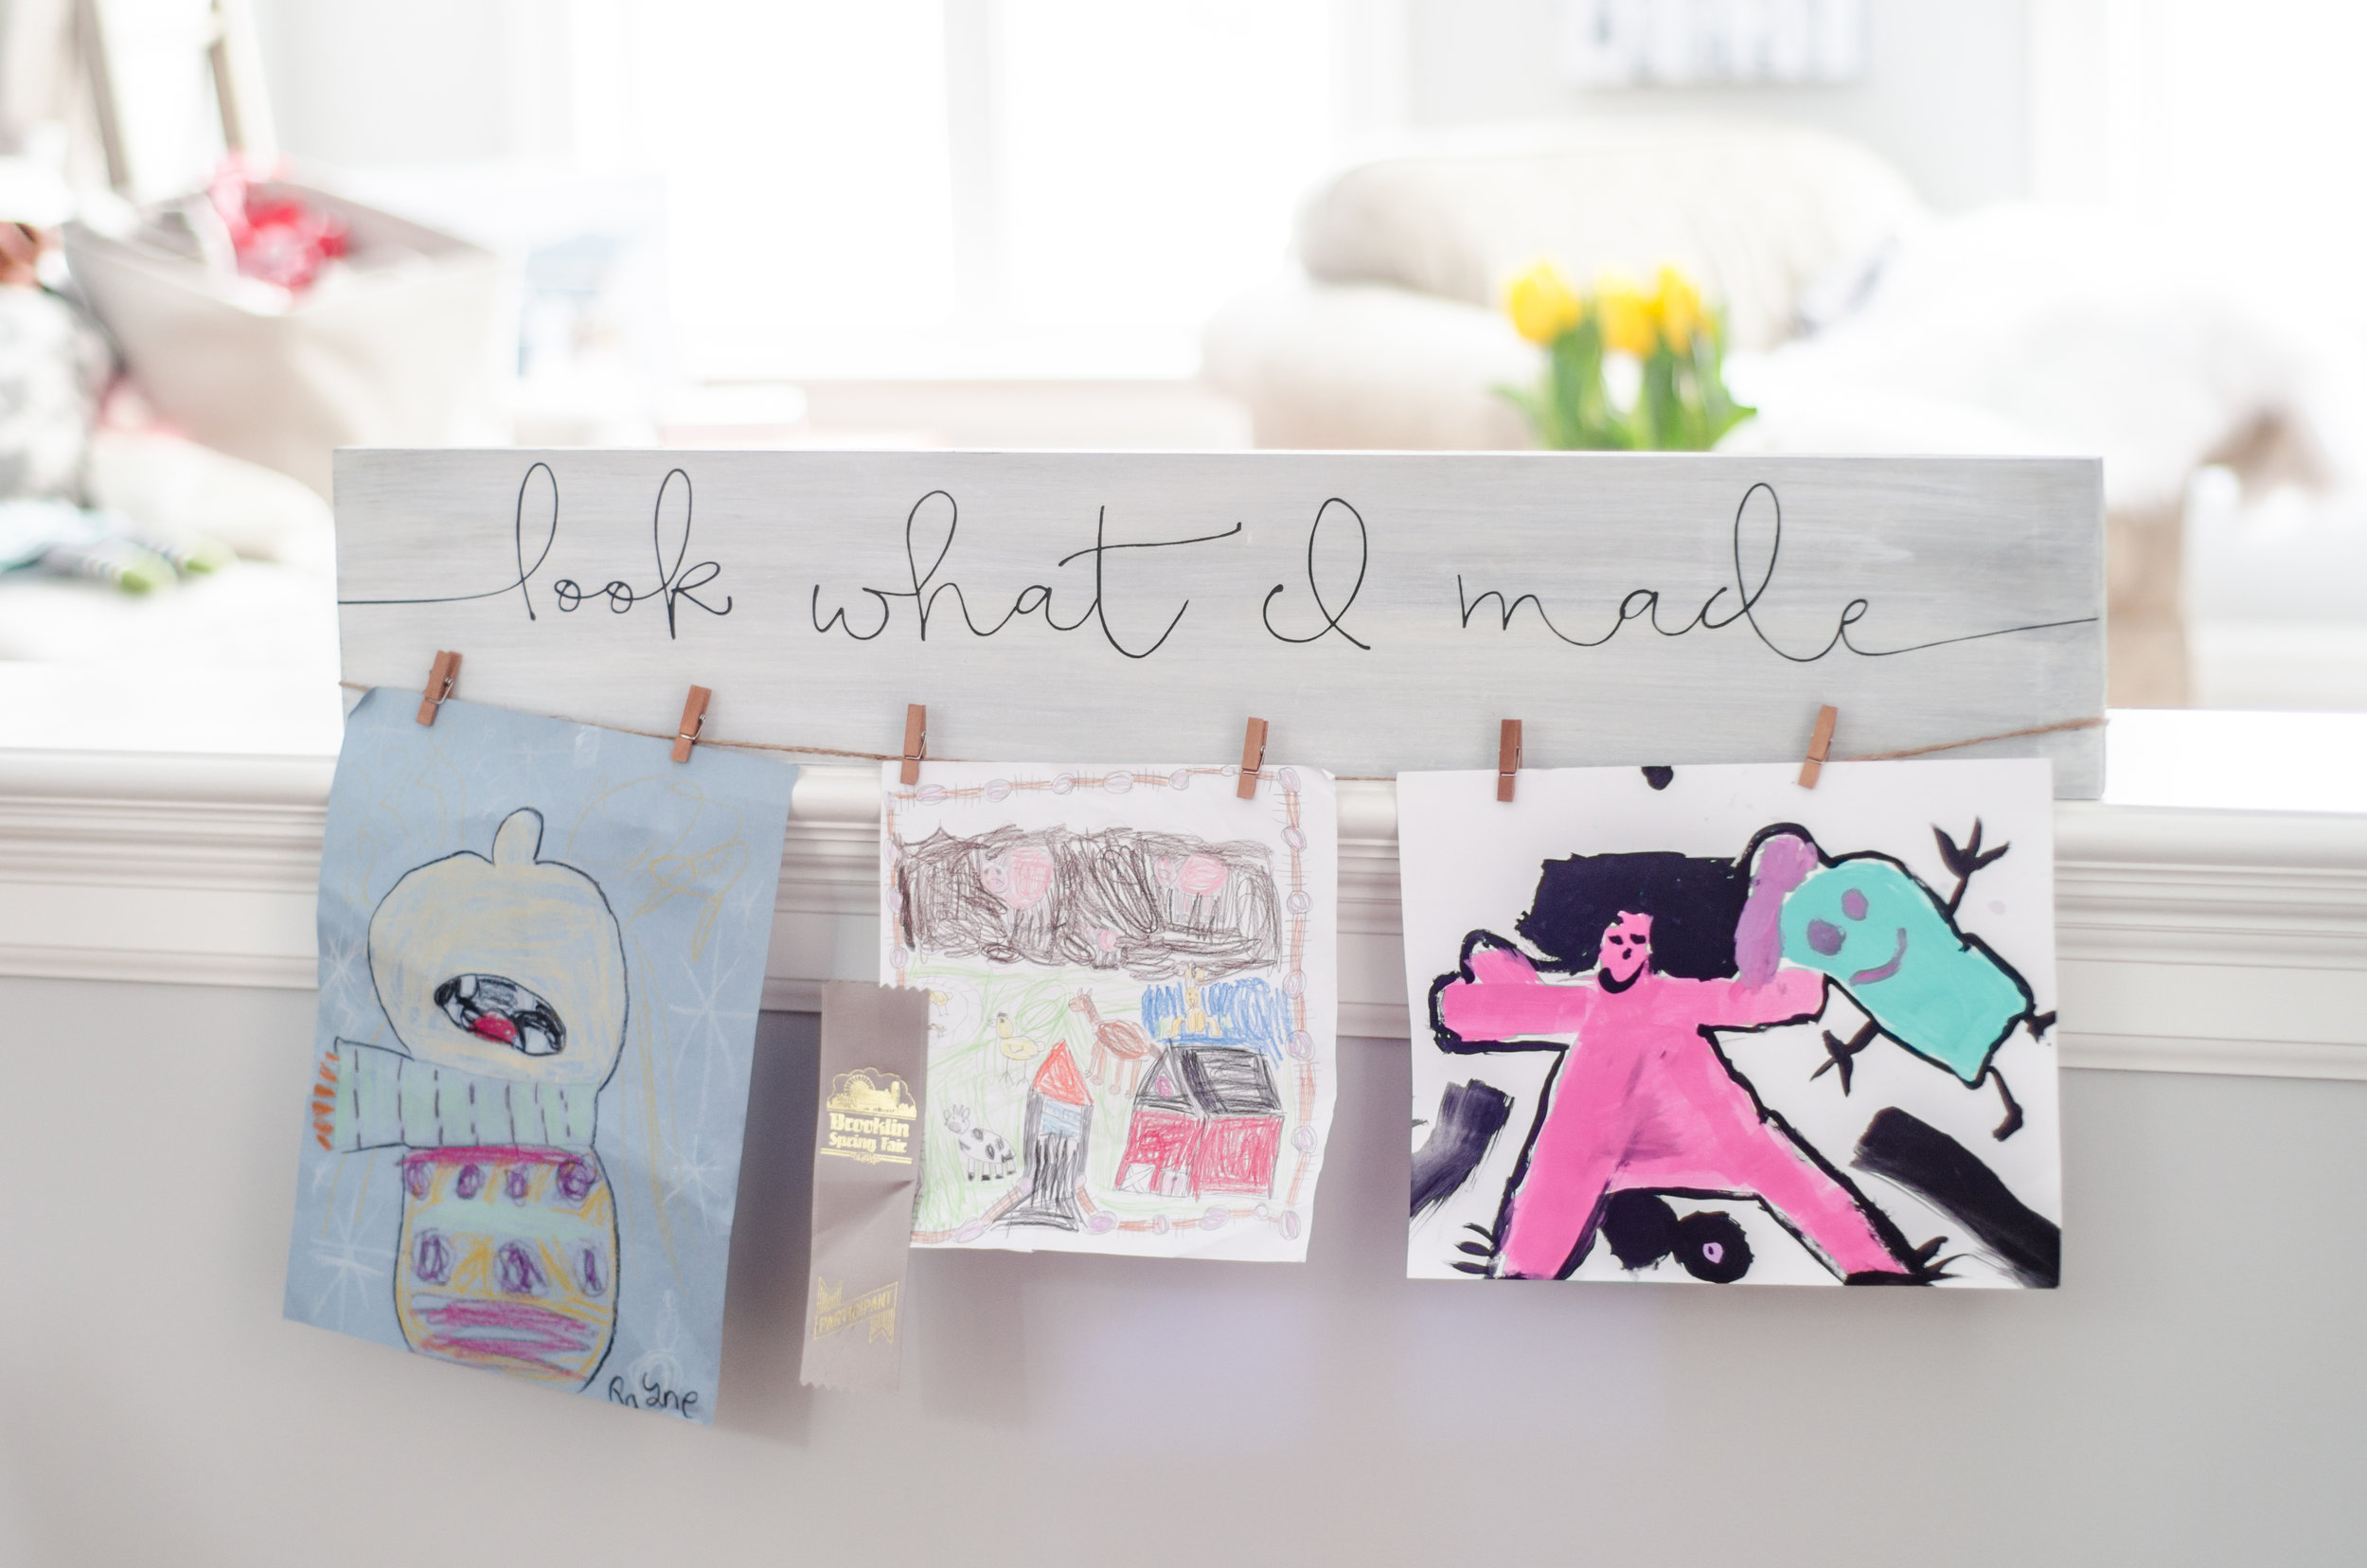 'Look what I made' sign - Wednesday March 28th, 5:30-8pm!